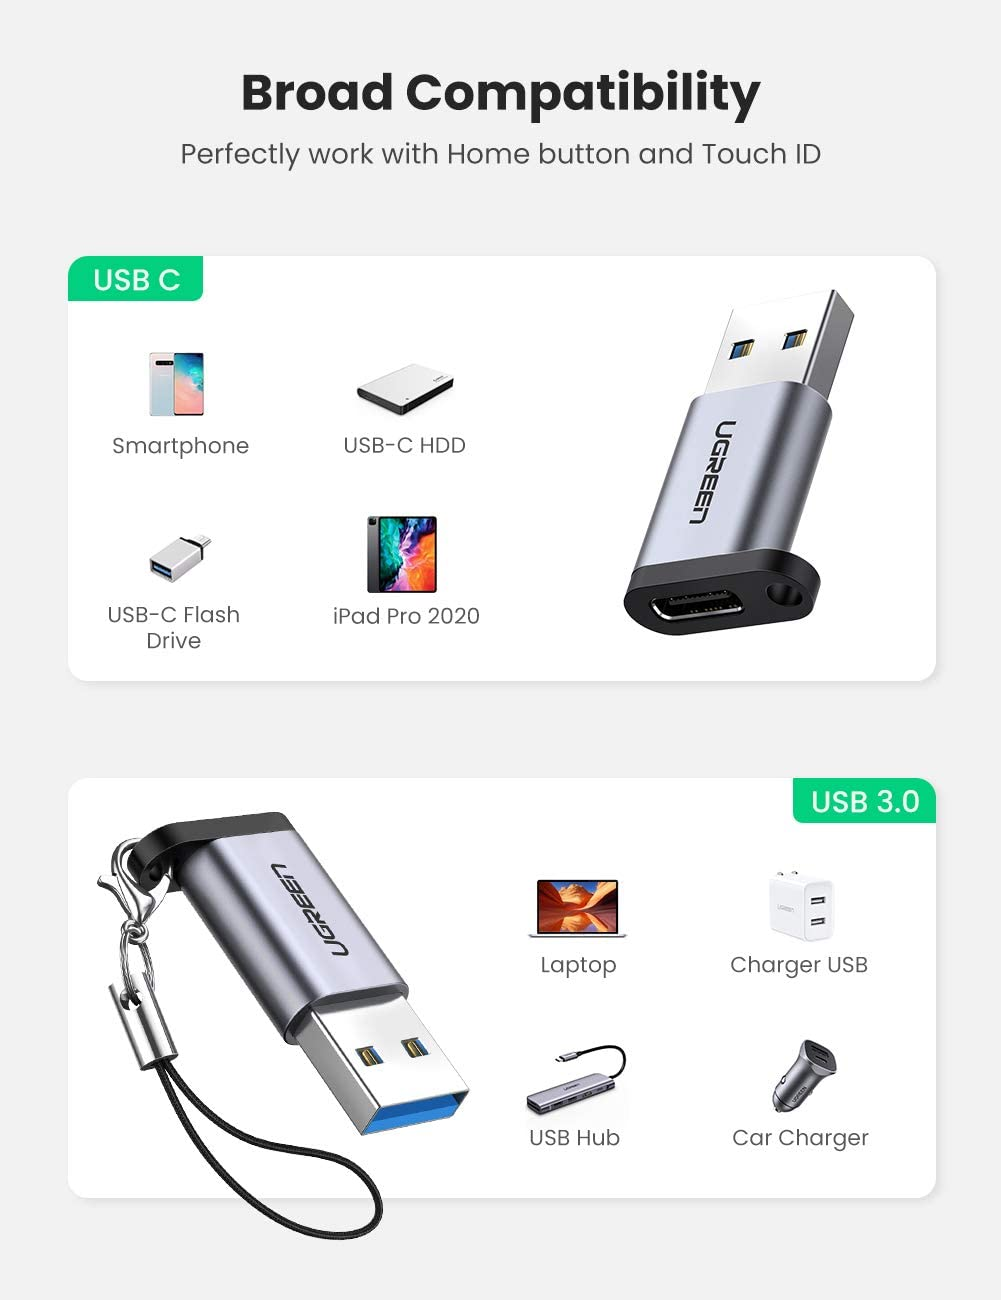 Laptop and Wall Charger with USB Type A Port UGREEN USB C to USB 3.0 Adapter Type C 3.1 Female to USB A Male Converter for PC